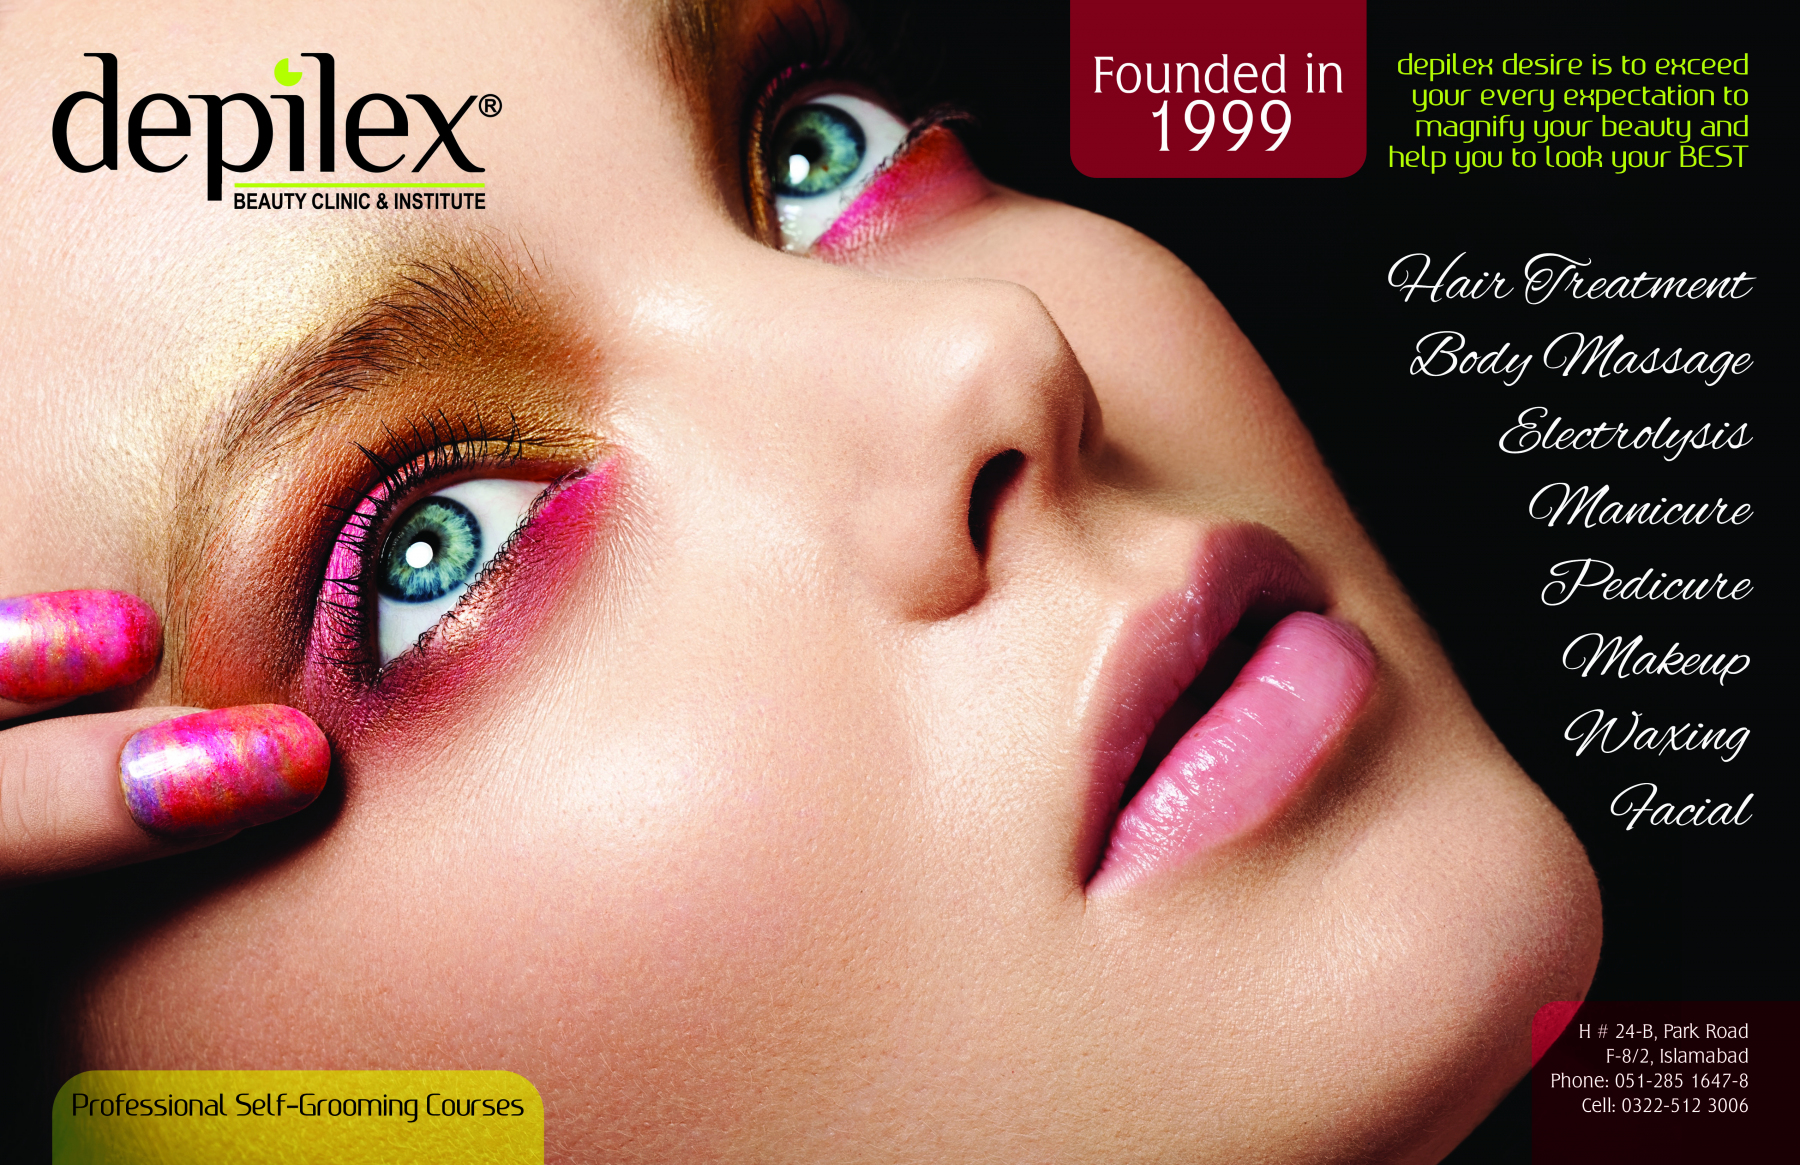 Depilex-Beauty-Clinic-Institute-01-copy